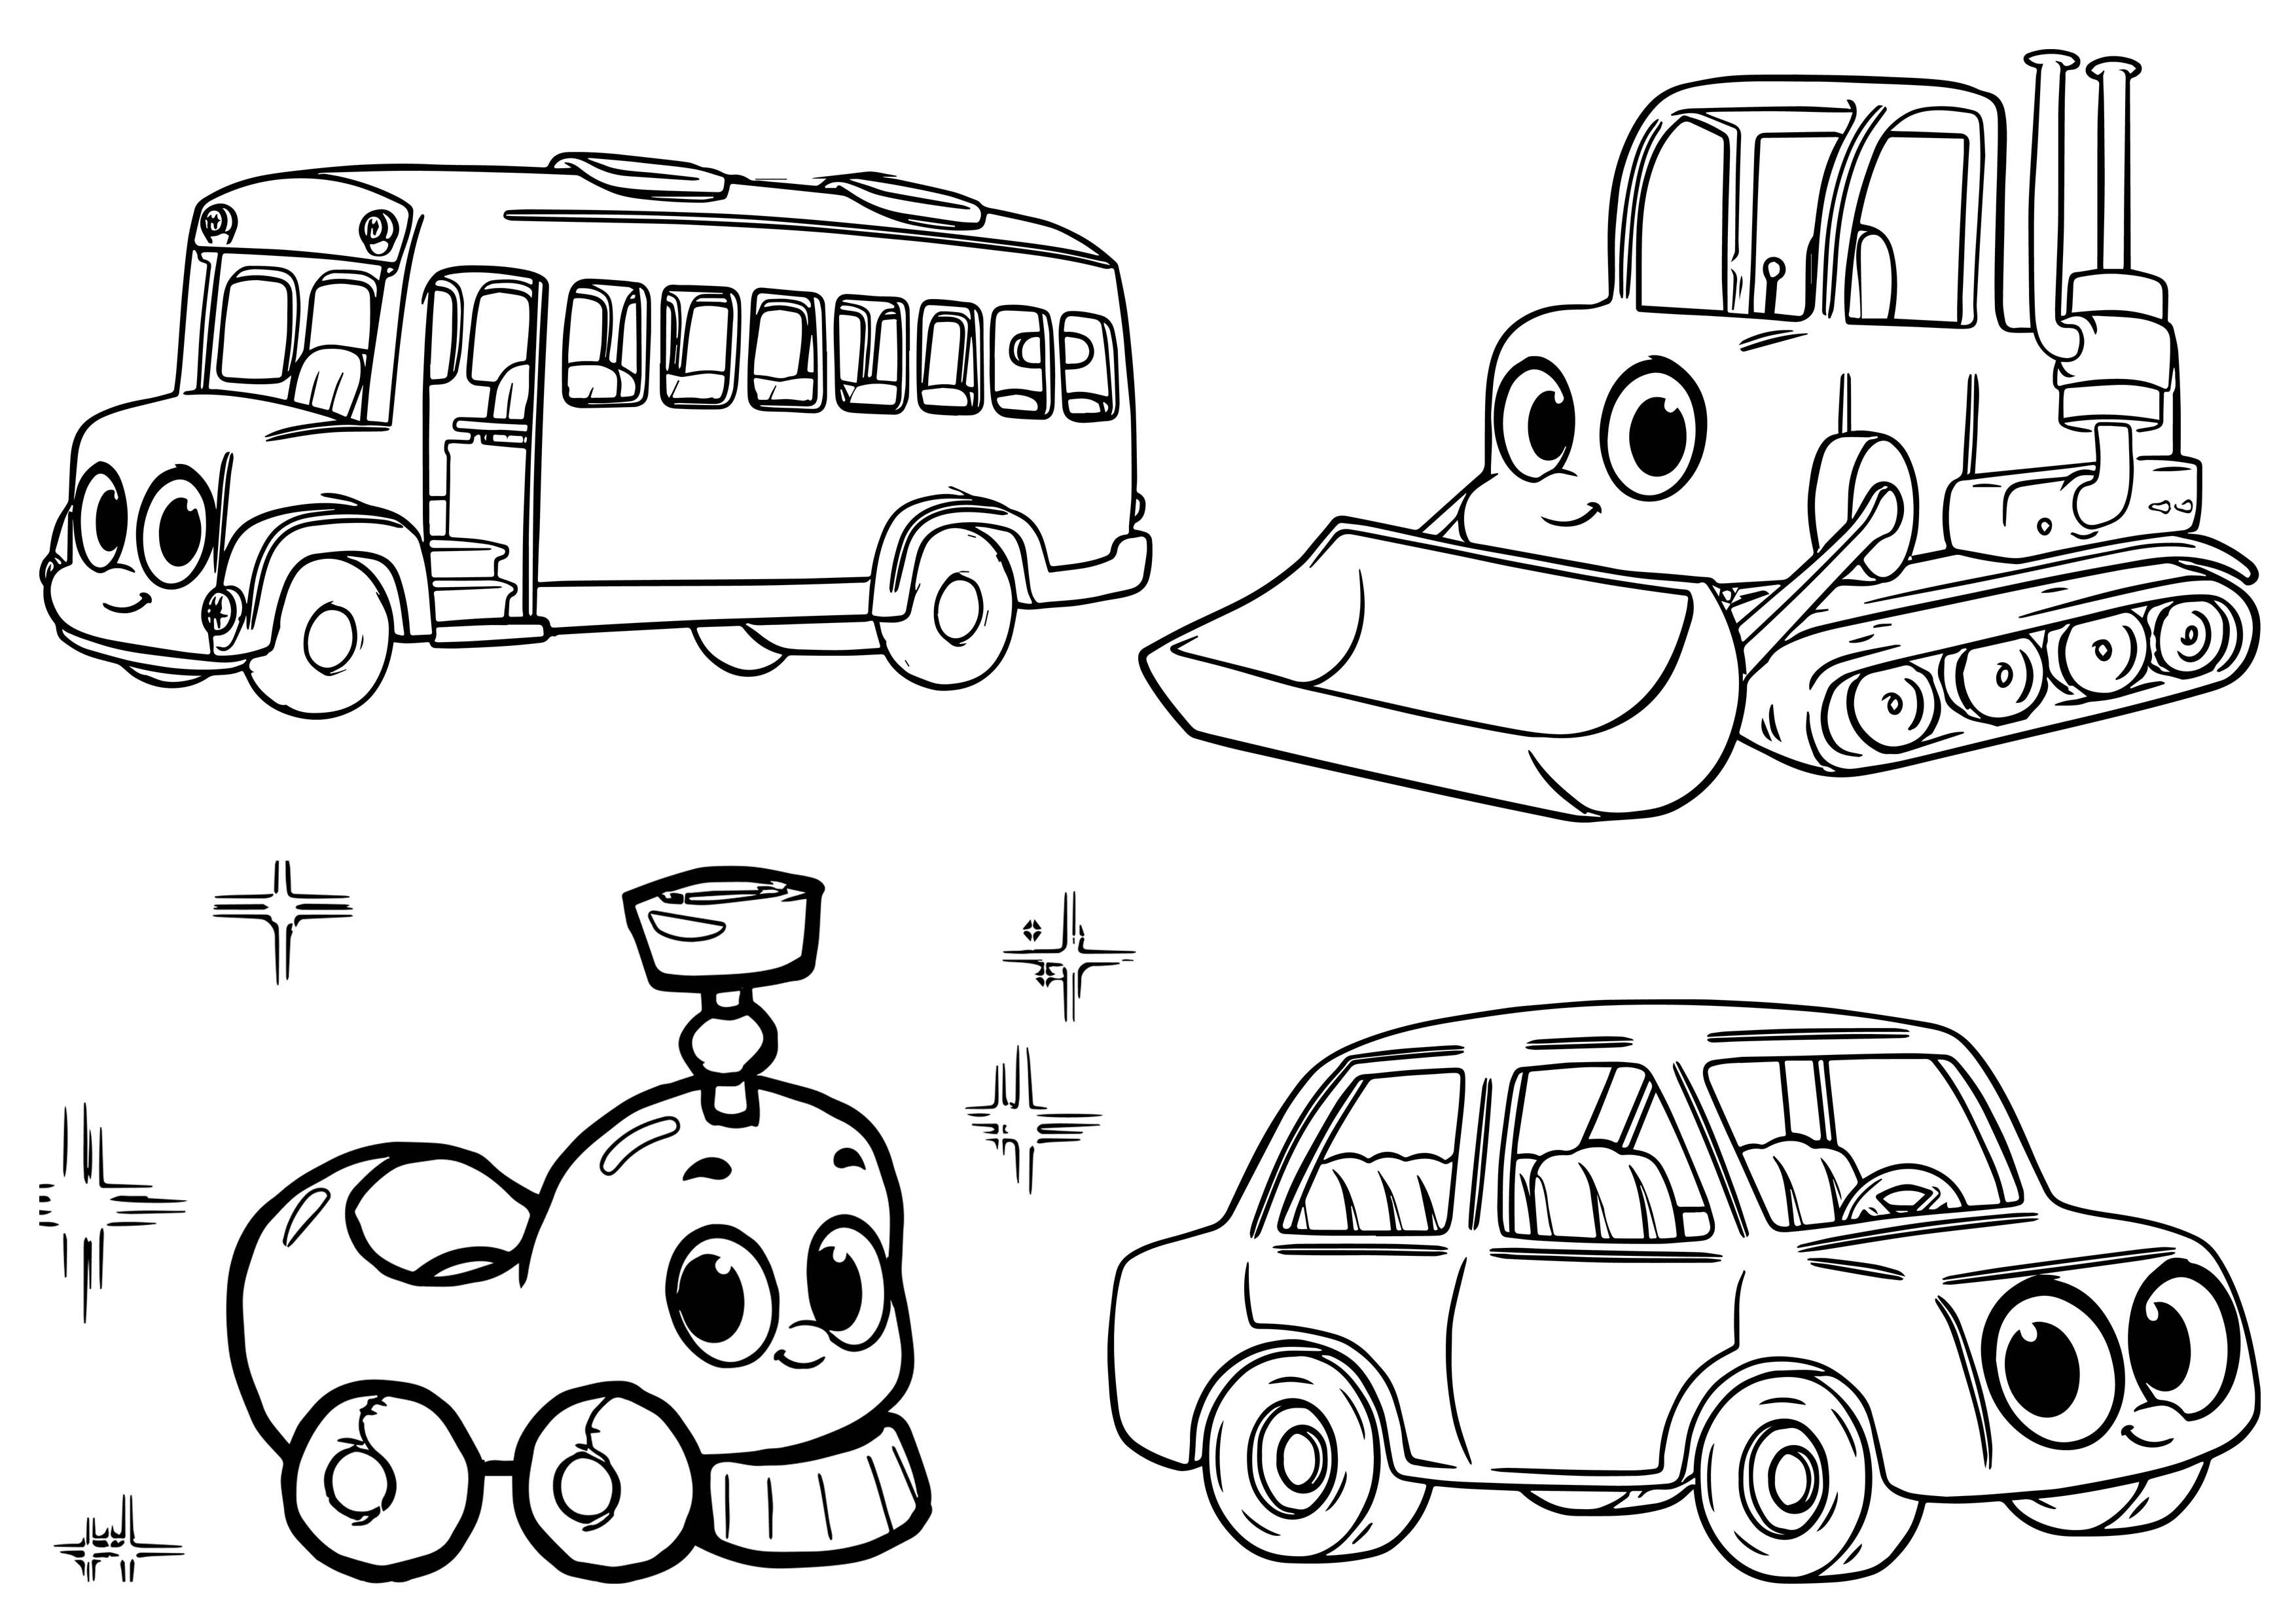 Morphle My Cute Coloring Pages. Mophle My Cute Cars And Vehicle